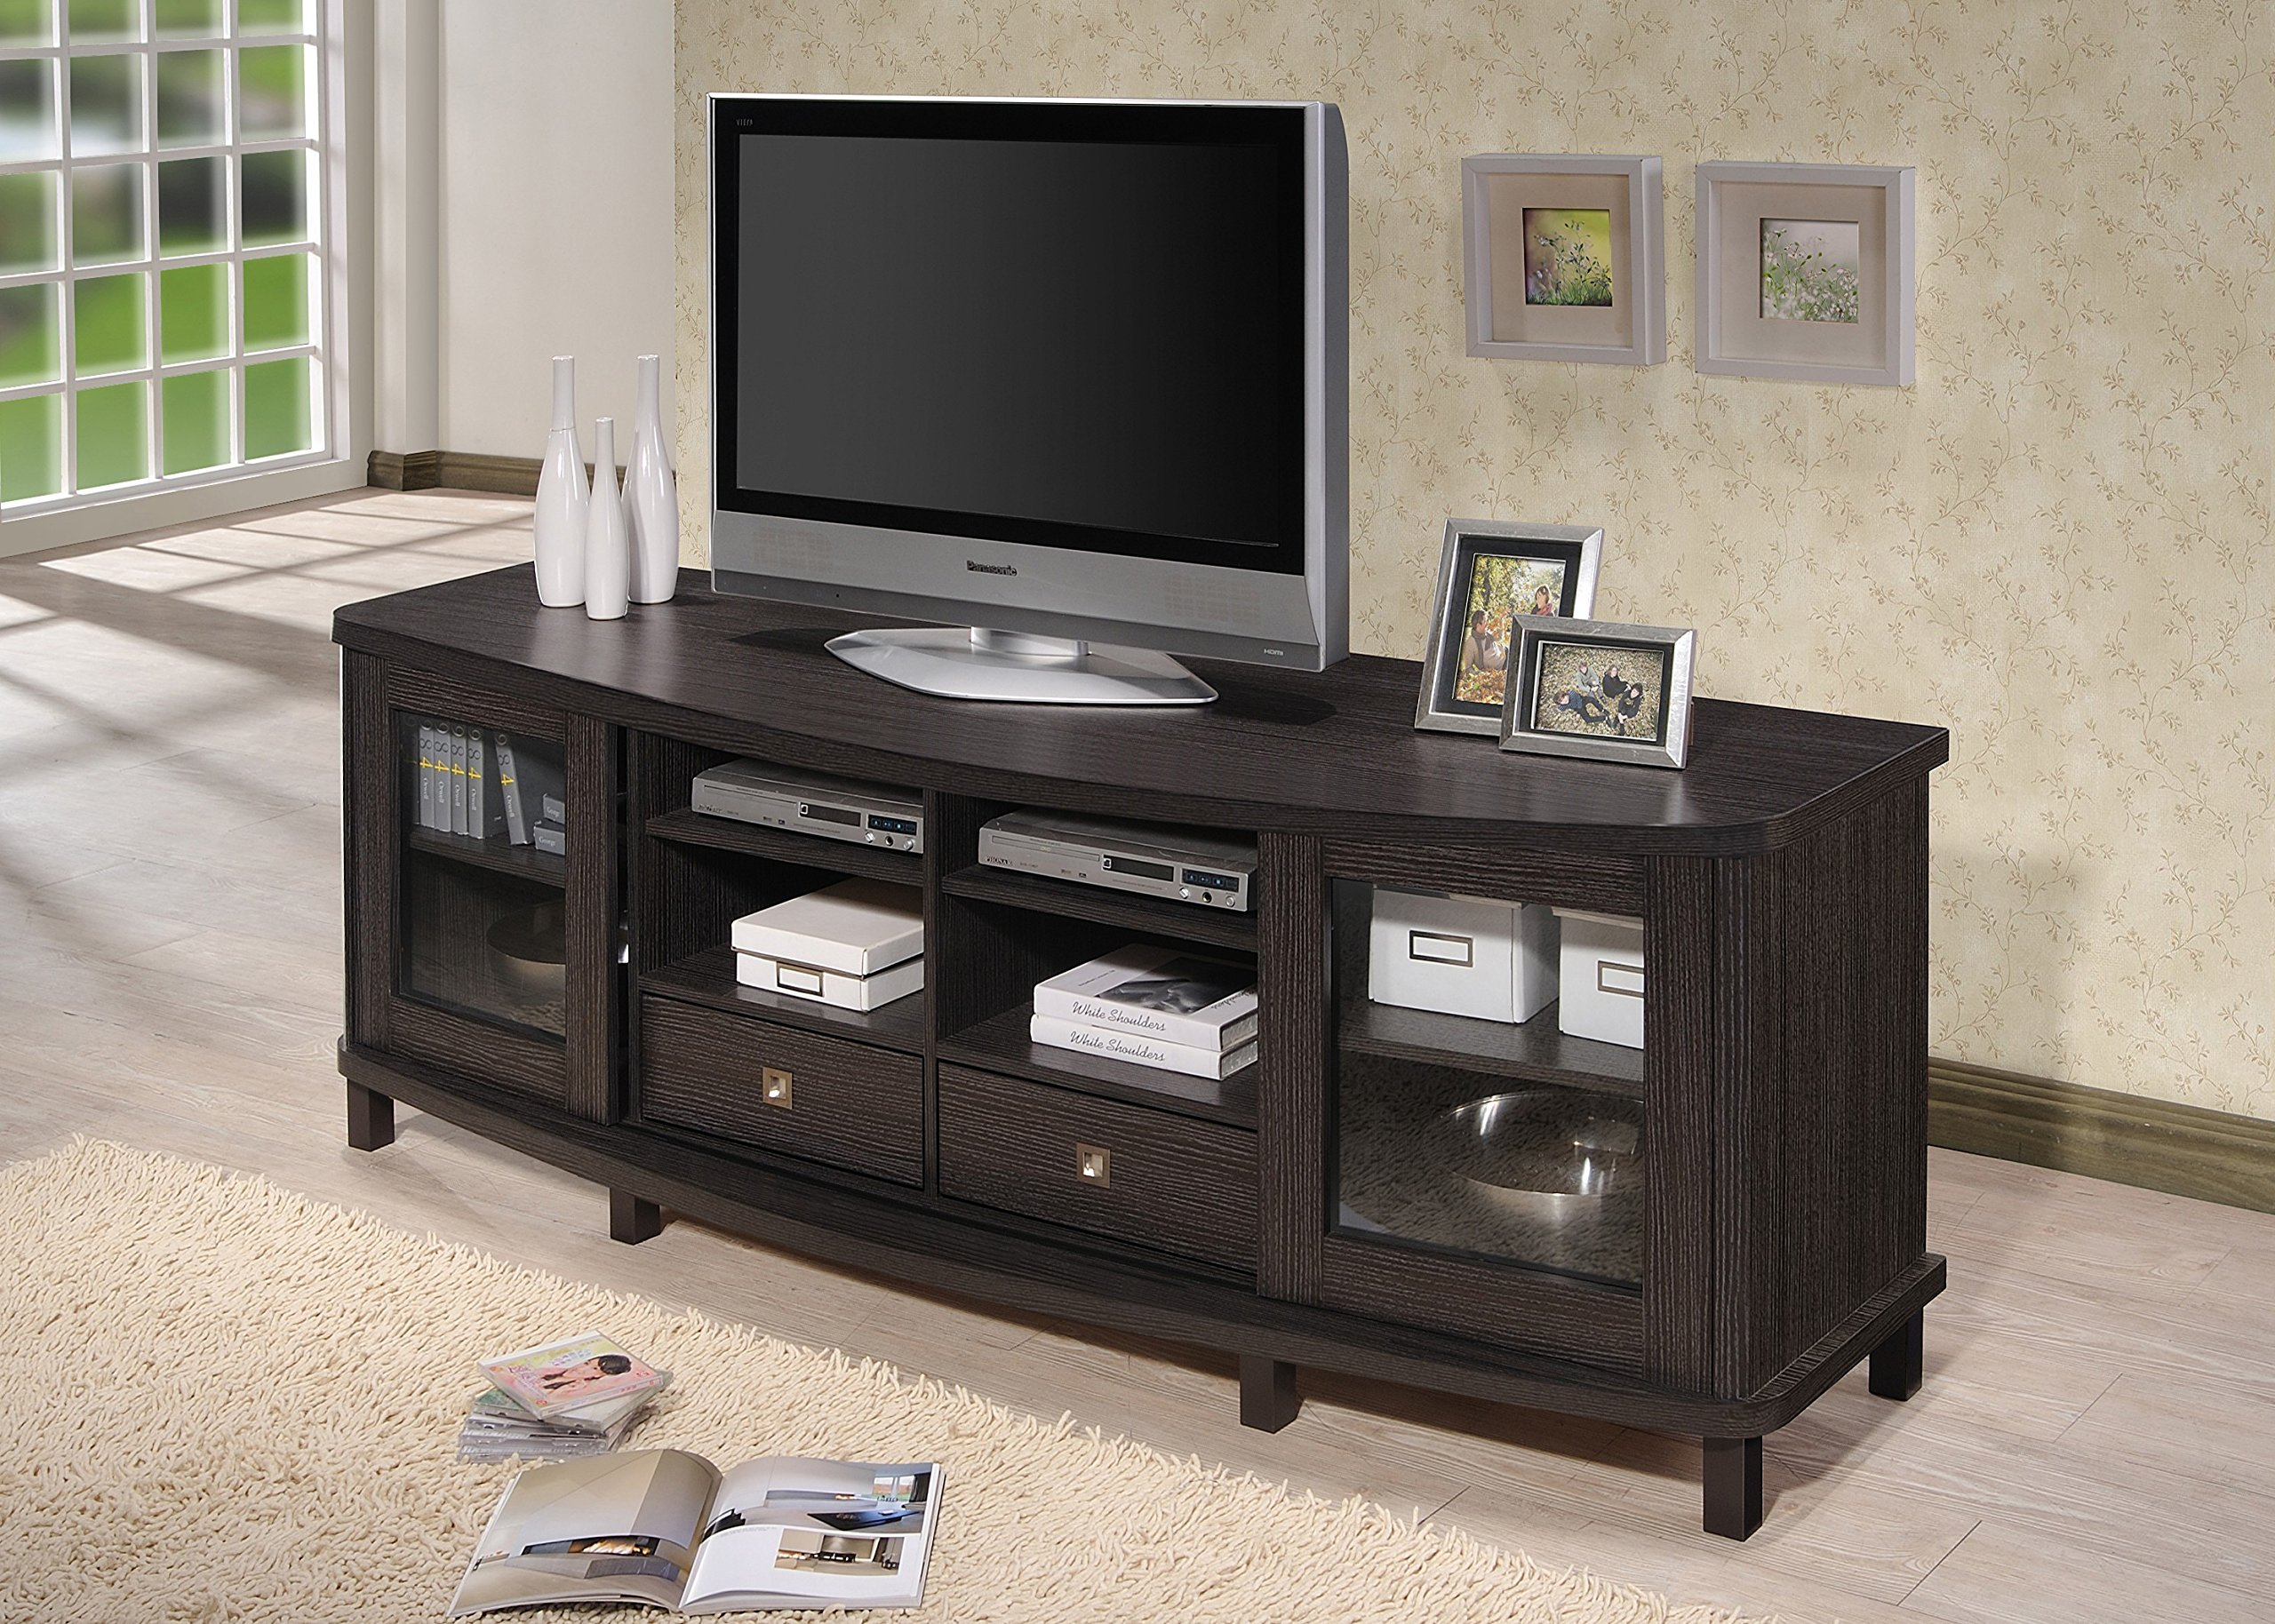 Wholesale Interiors Baxton Studio Walda Wood TV Cabinet with 2 Sliding Doors and 2 Drawers, 70'', Dark Brown by Wholesale Interiors